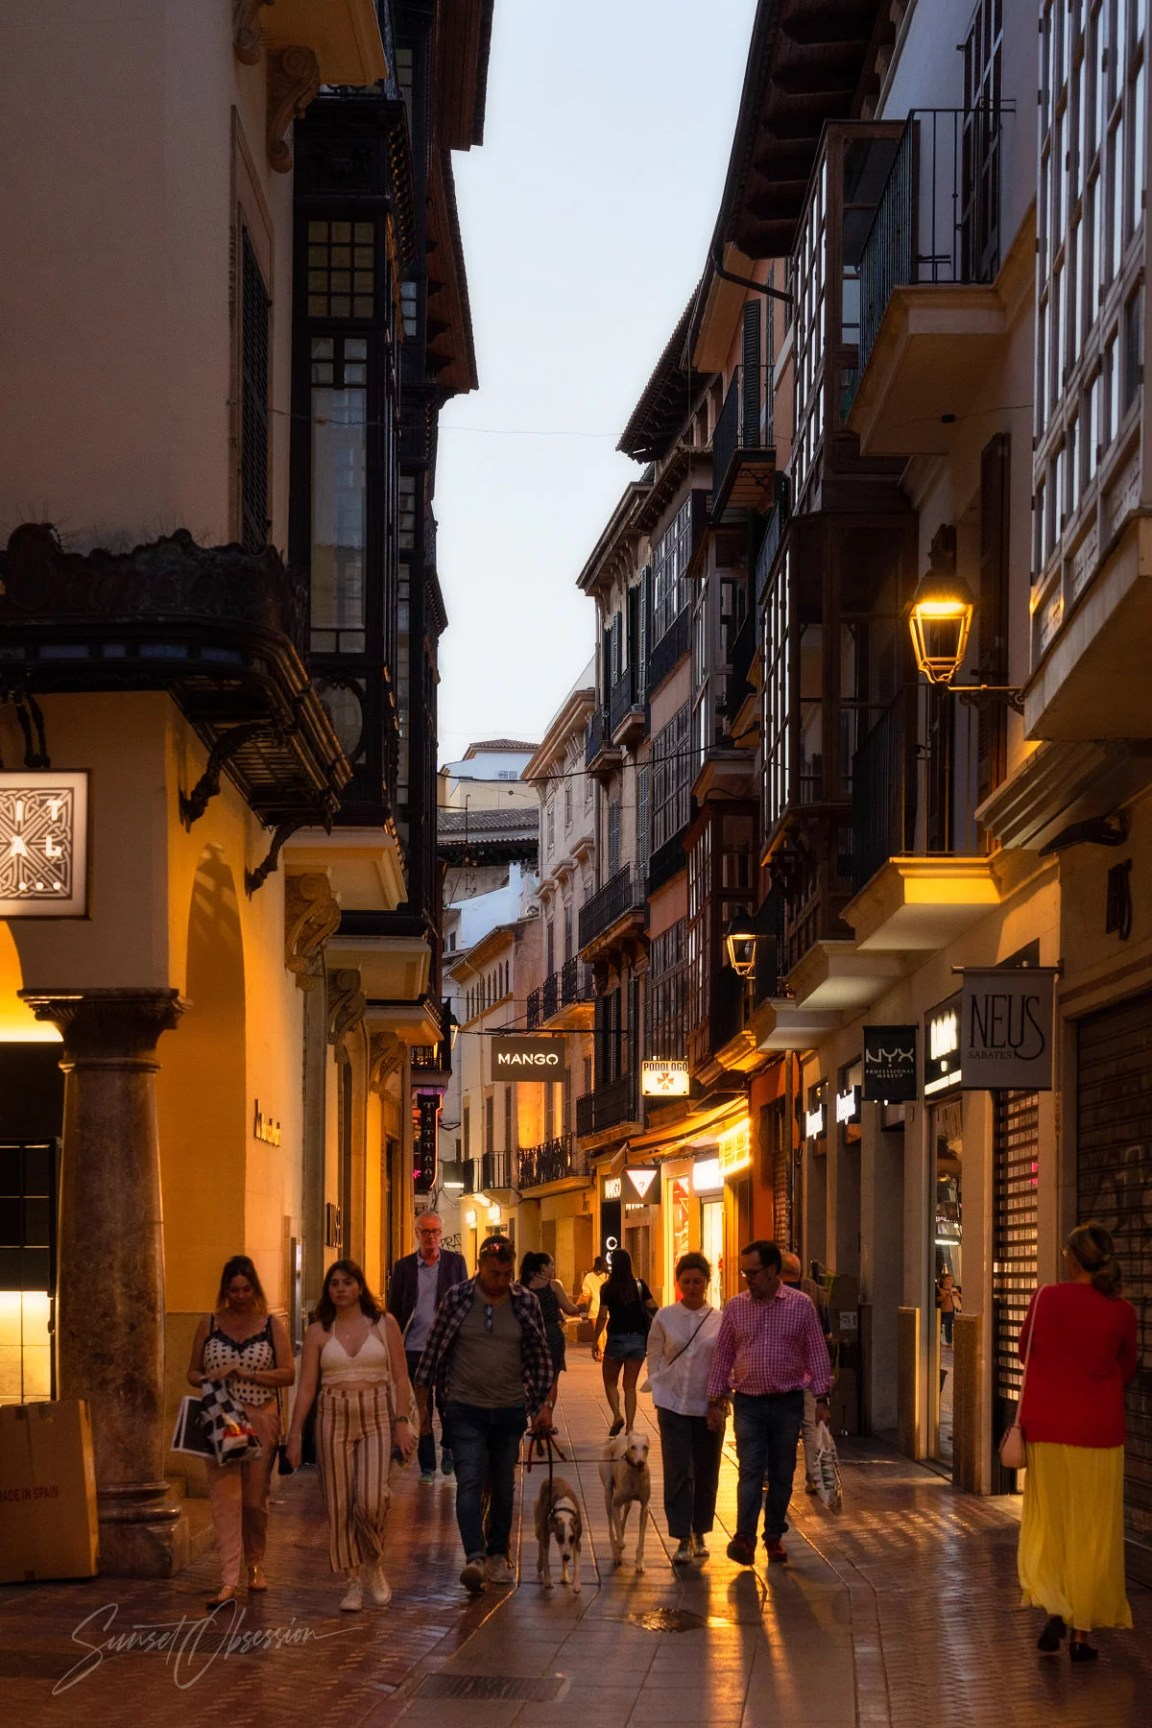 A relaxed evening in the old town of Palma de Mallorca